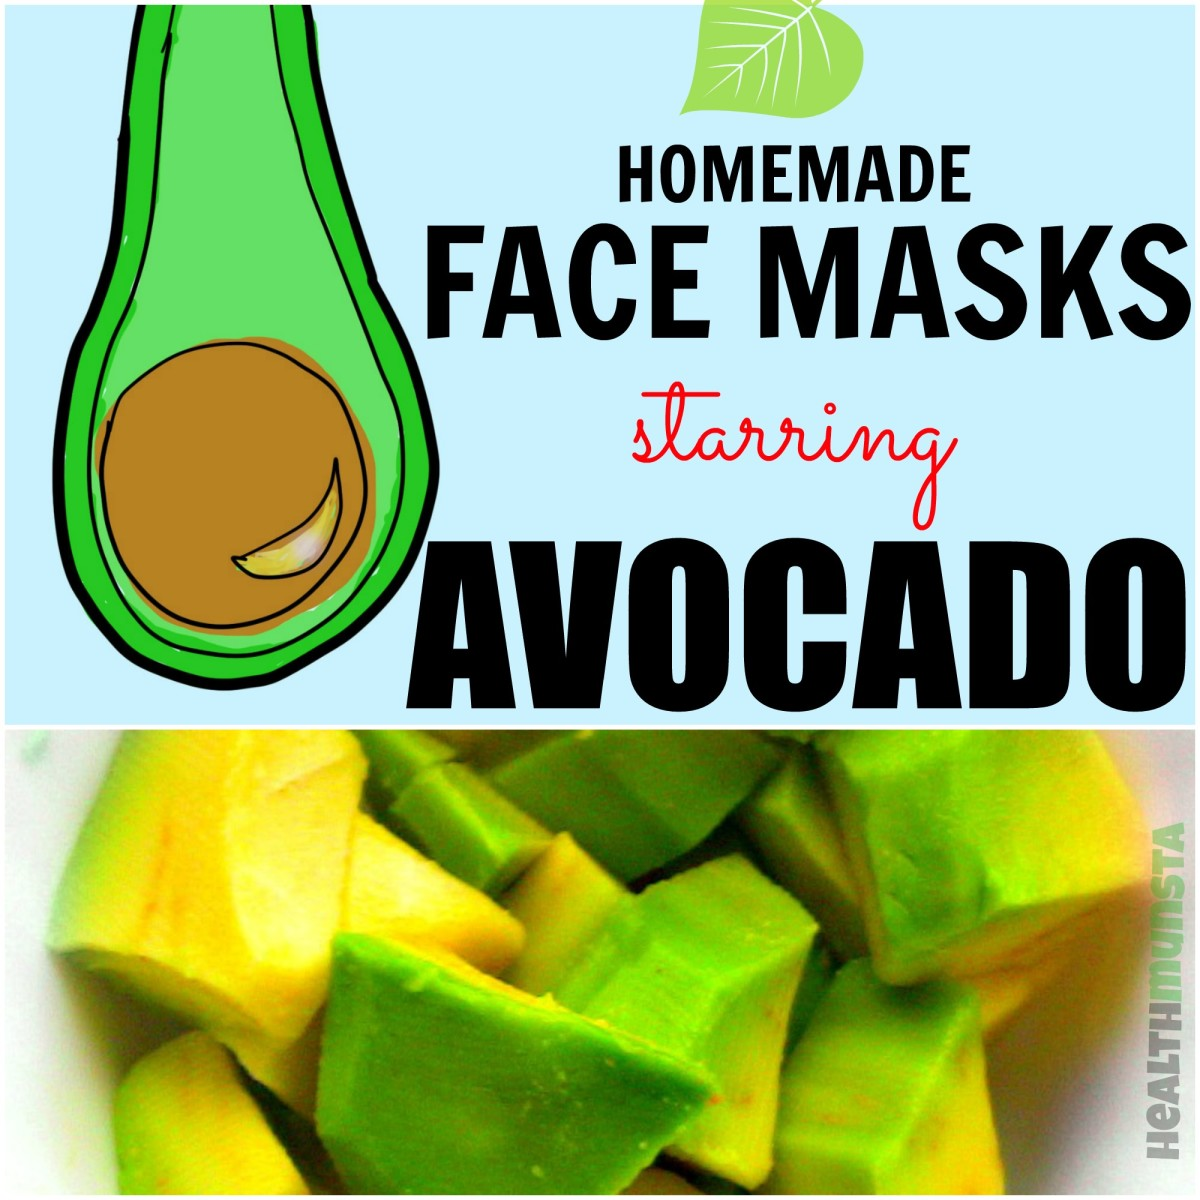 Got left over avocado? Don't throw it out! Try these amazing avocado face masks!